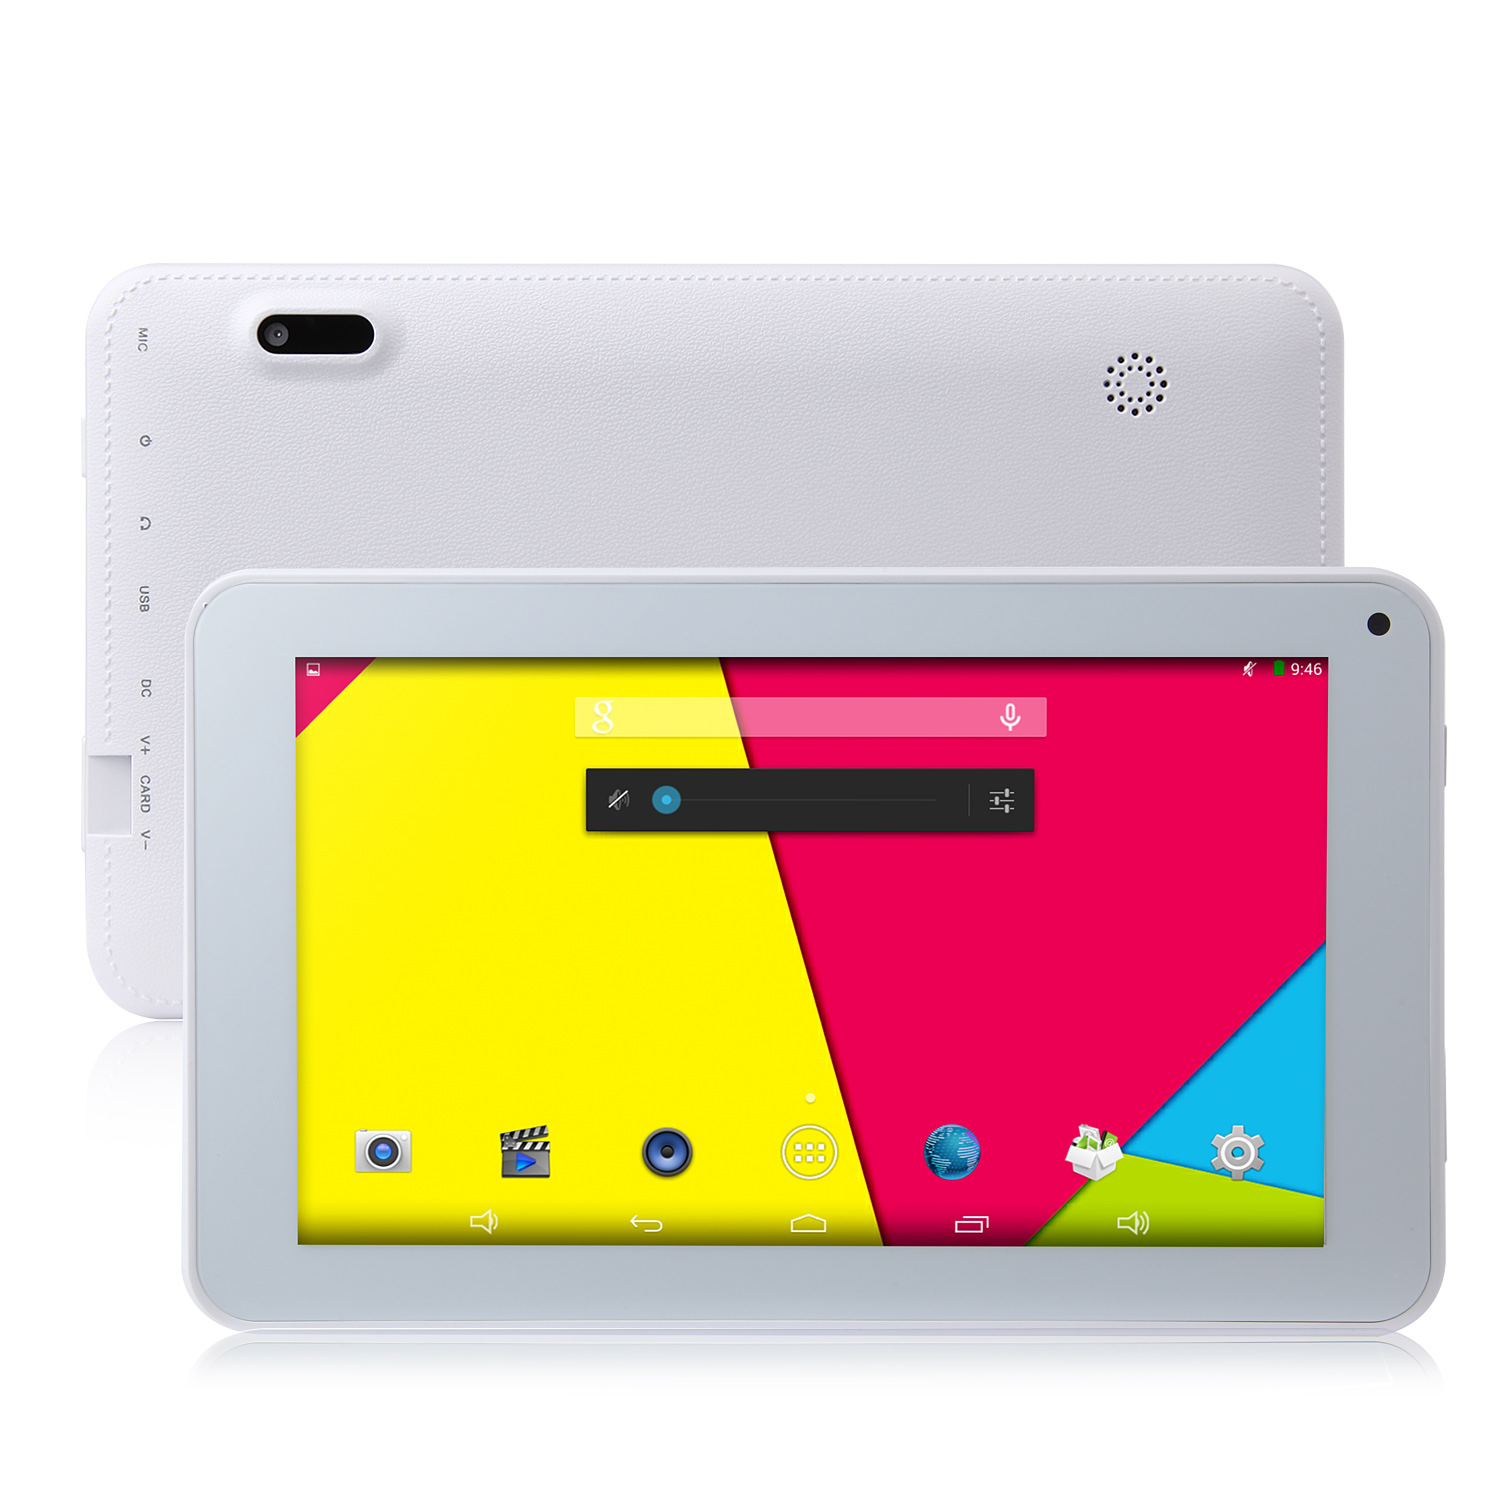 ICOO D70GT Tablet PC Quad Core RK3188 7.0 Inch Android 4.4 IPS Screen 8GB White